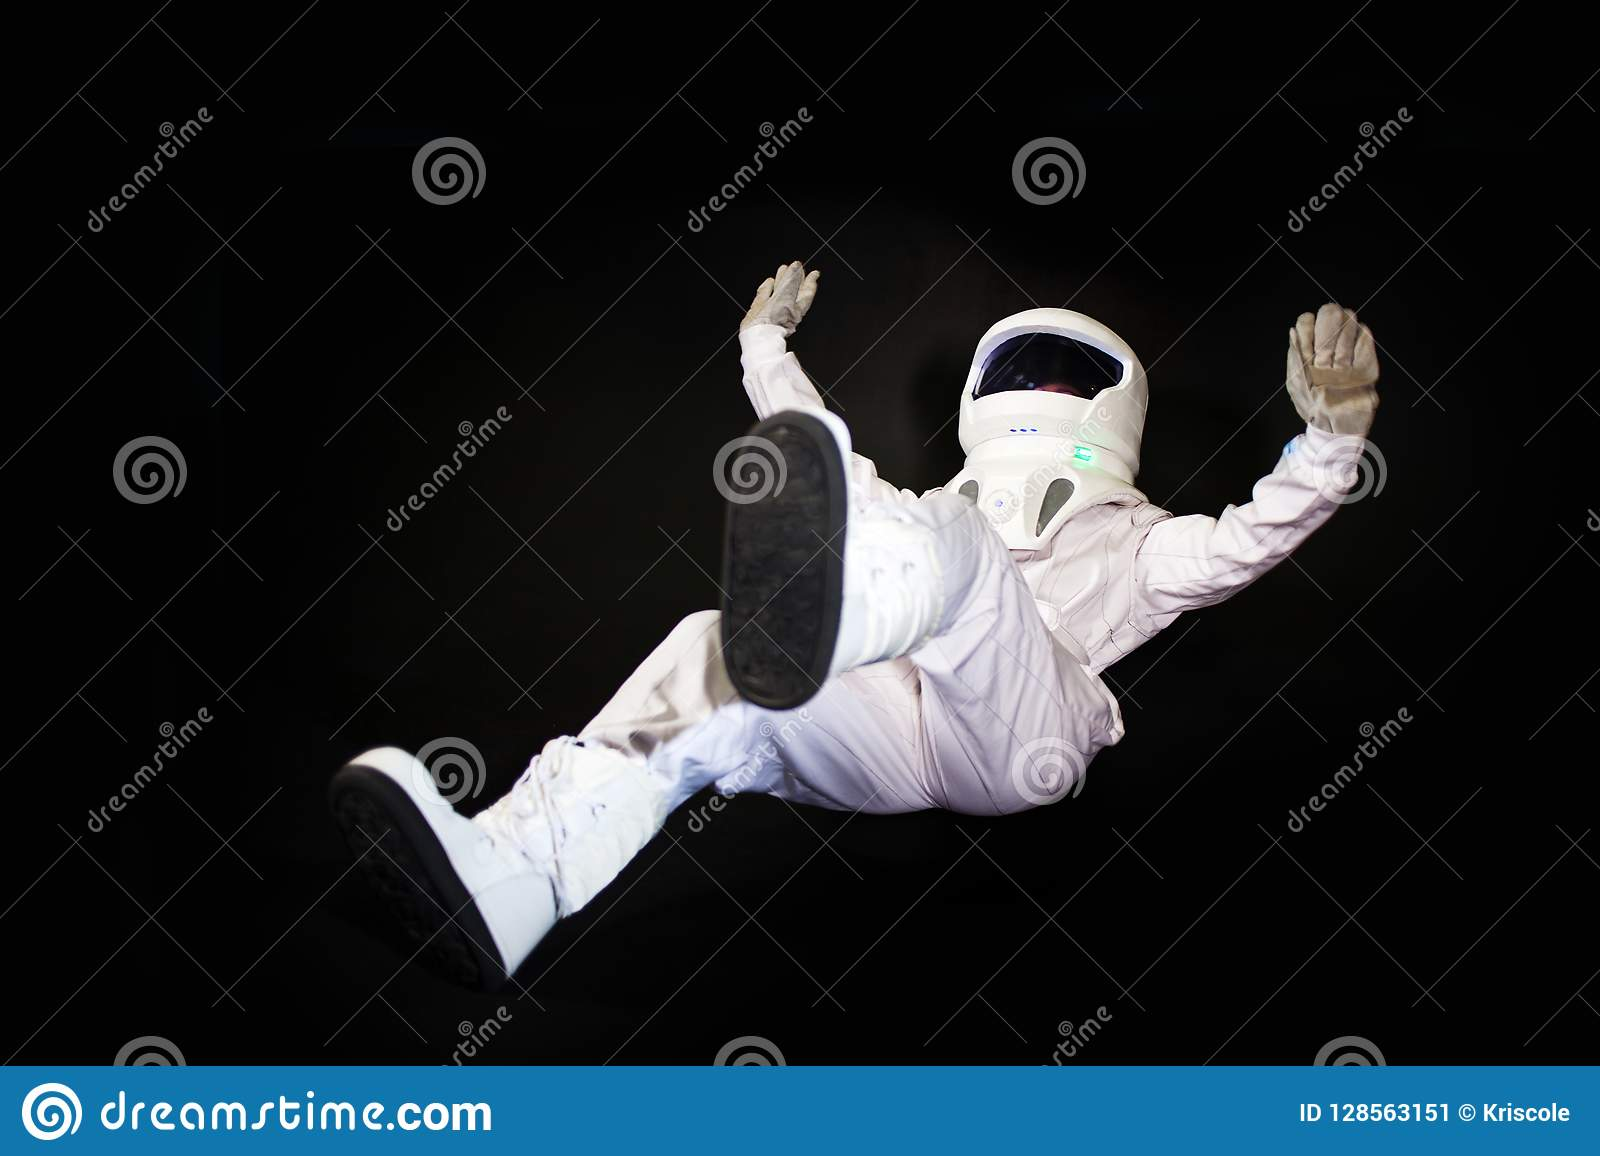 Astronaut In Space, In Zero Gravity On Black Background  Stock Image